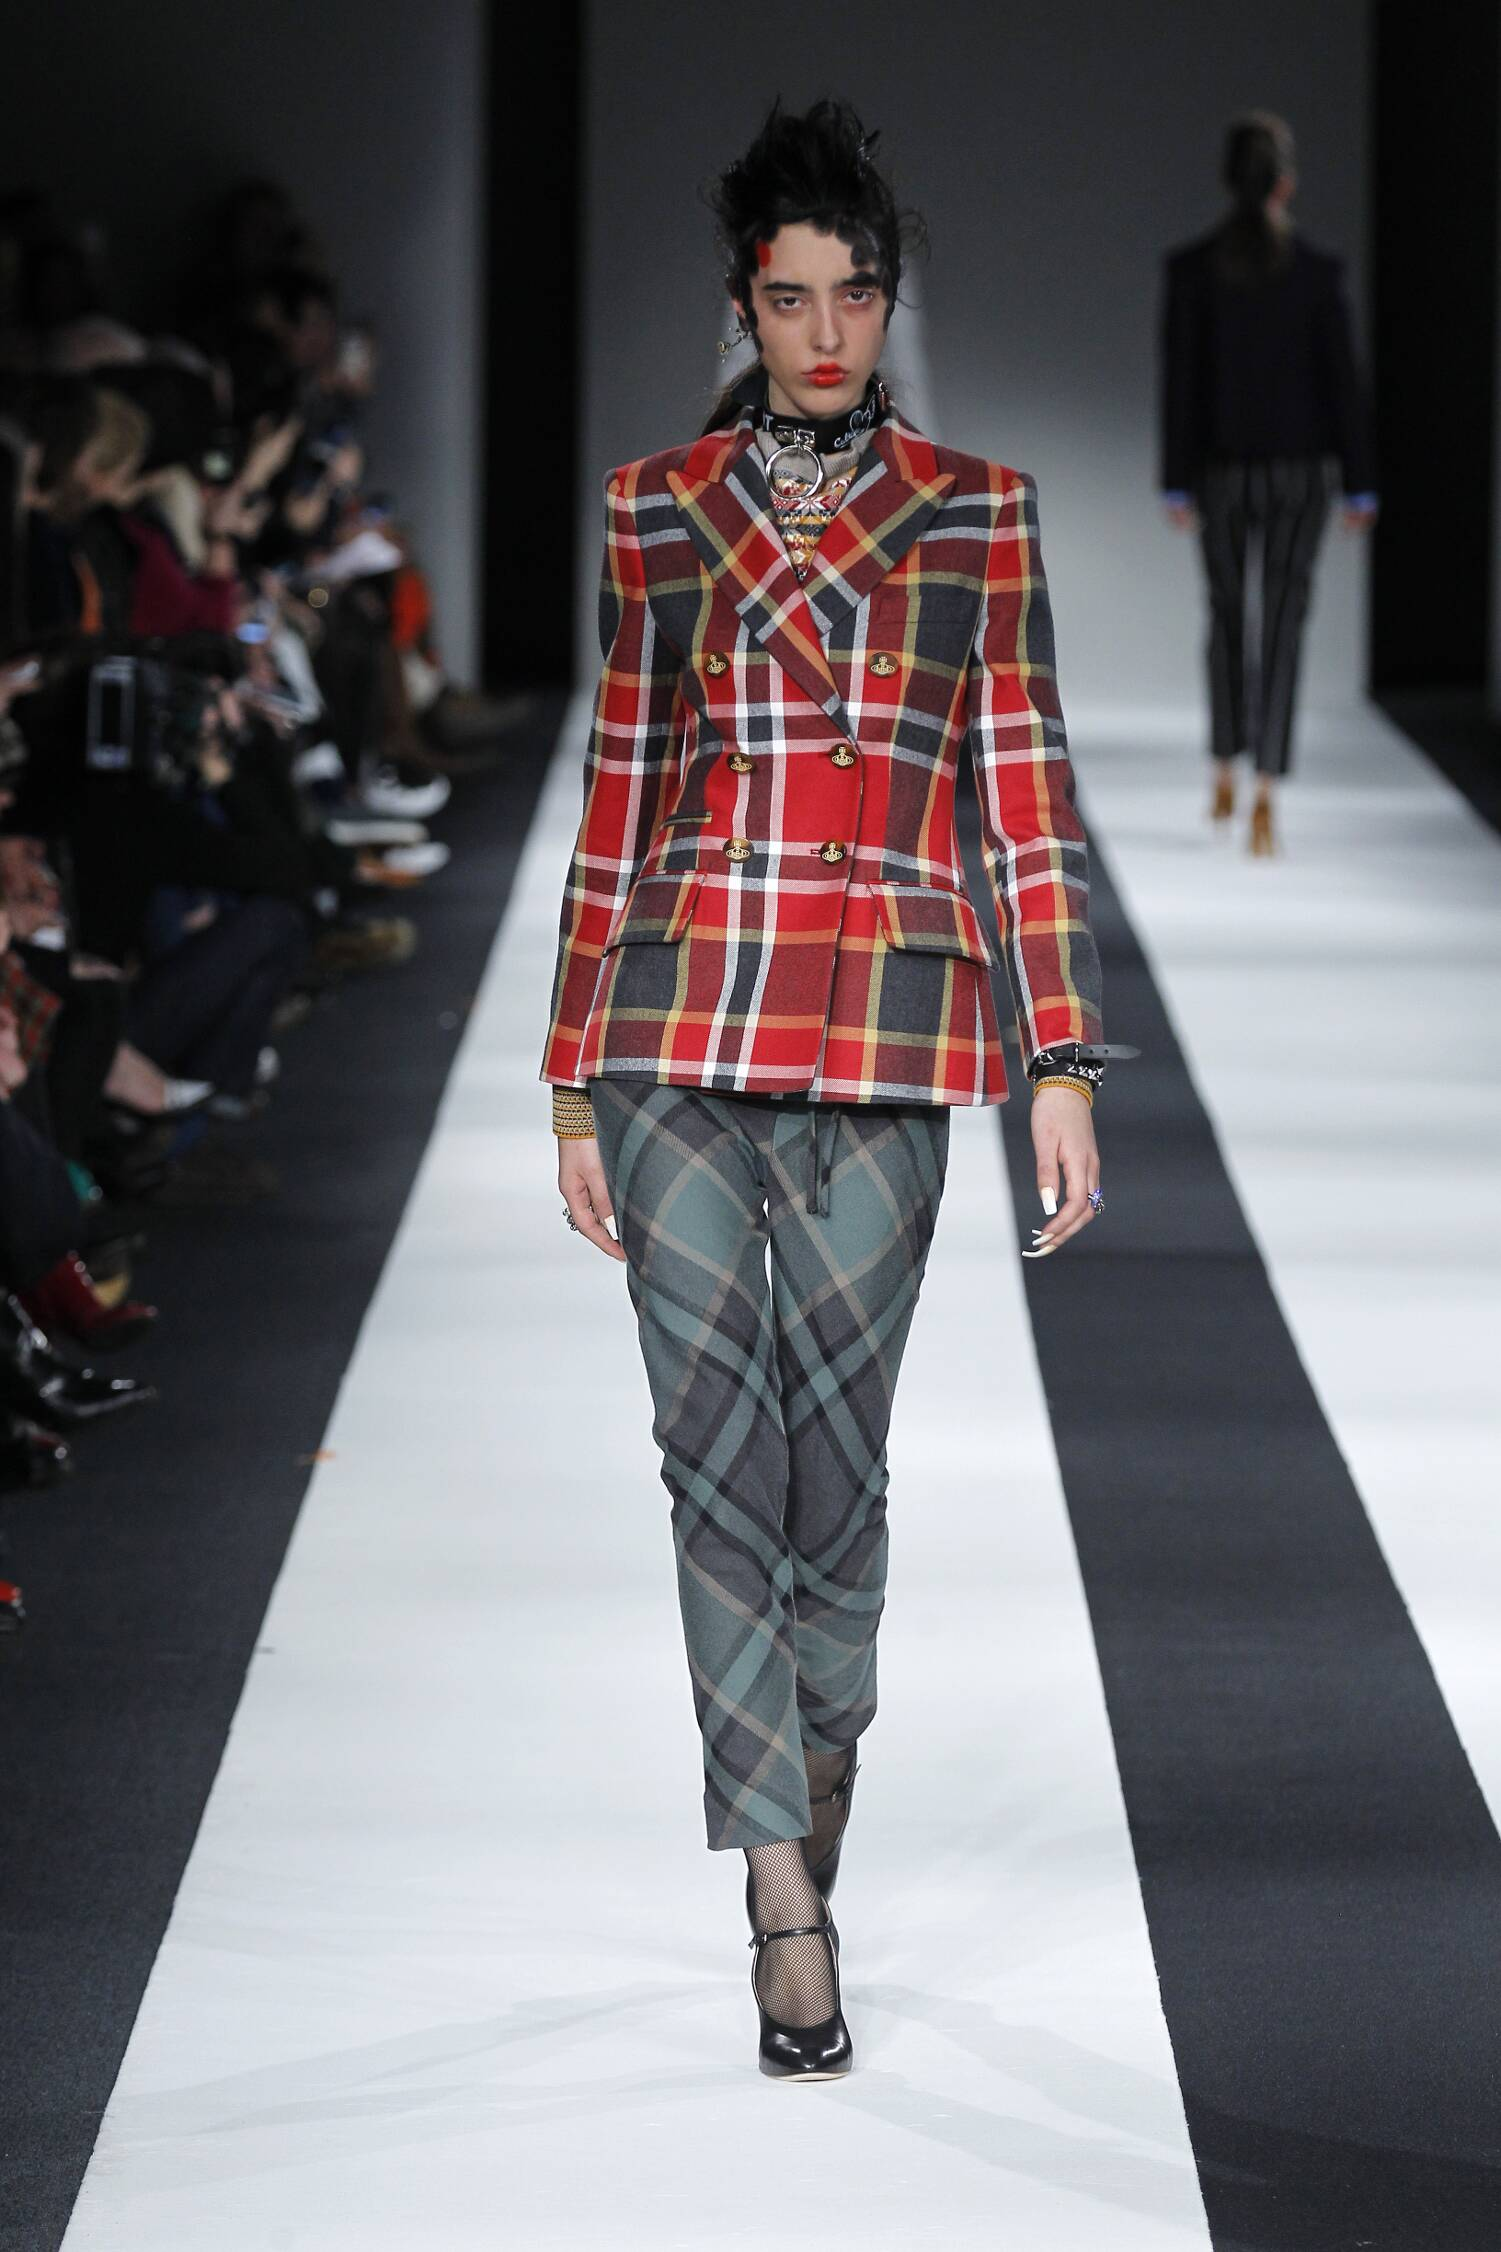 Fashion Woman Model Vivienne Westwood Red Label Collection Catwalk